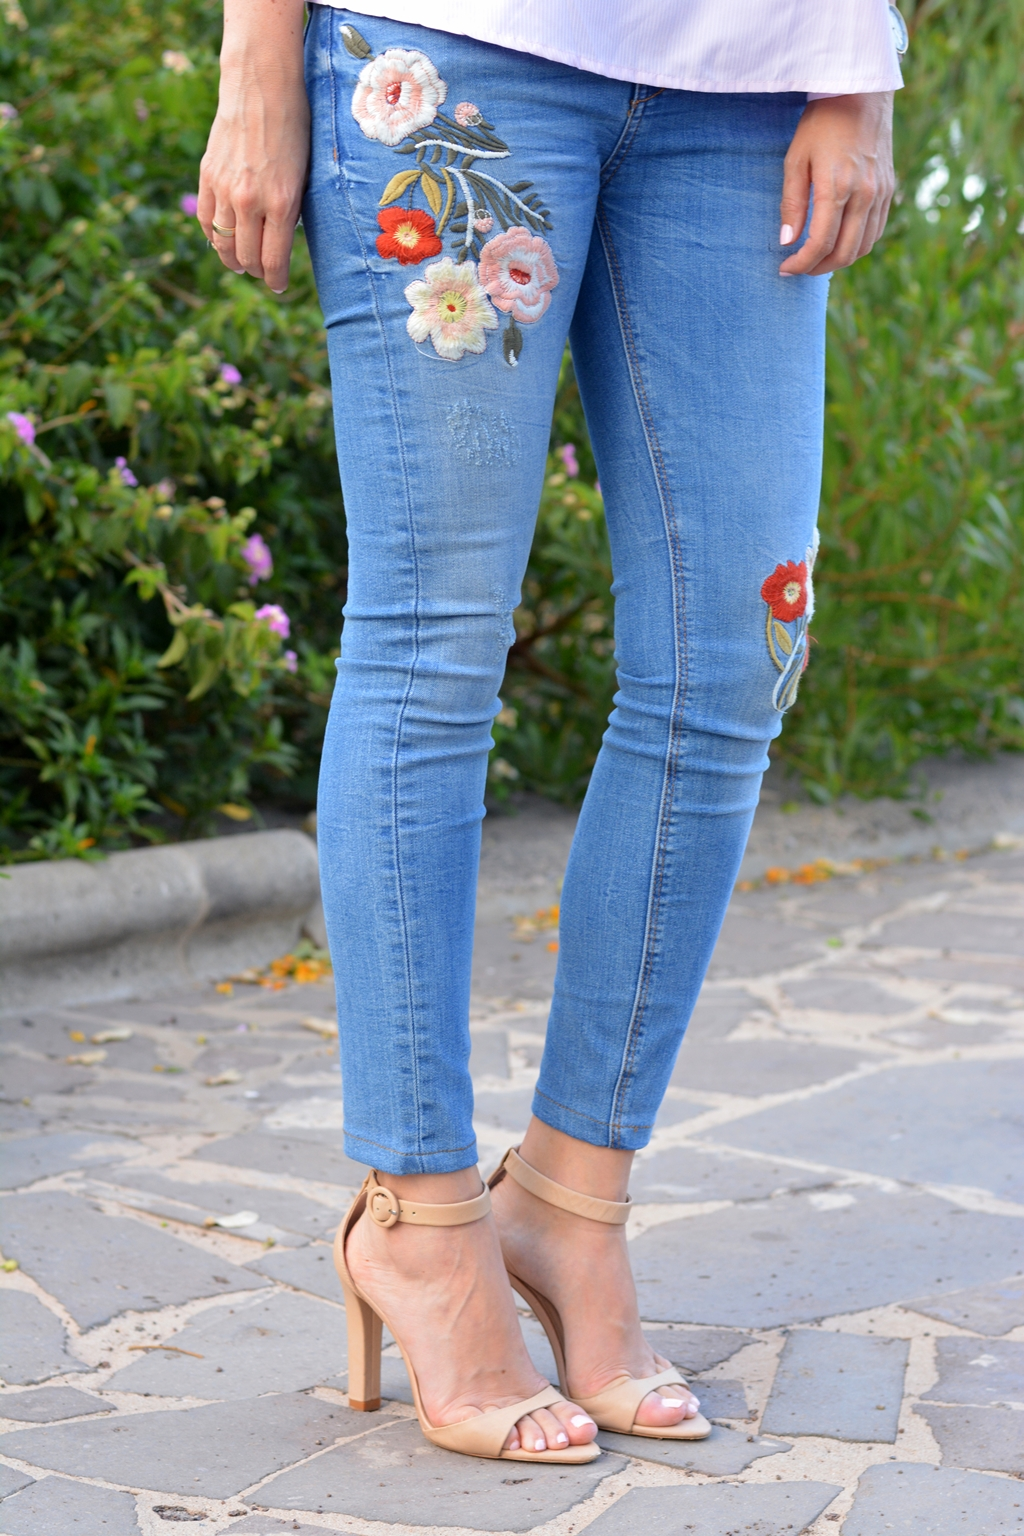 zara-embroidered-jeans-ss16-personalshopper